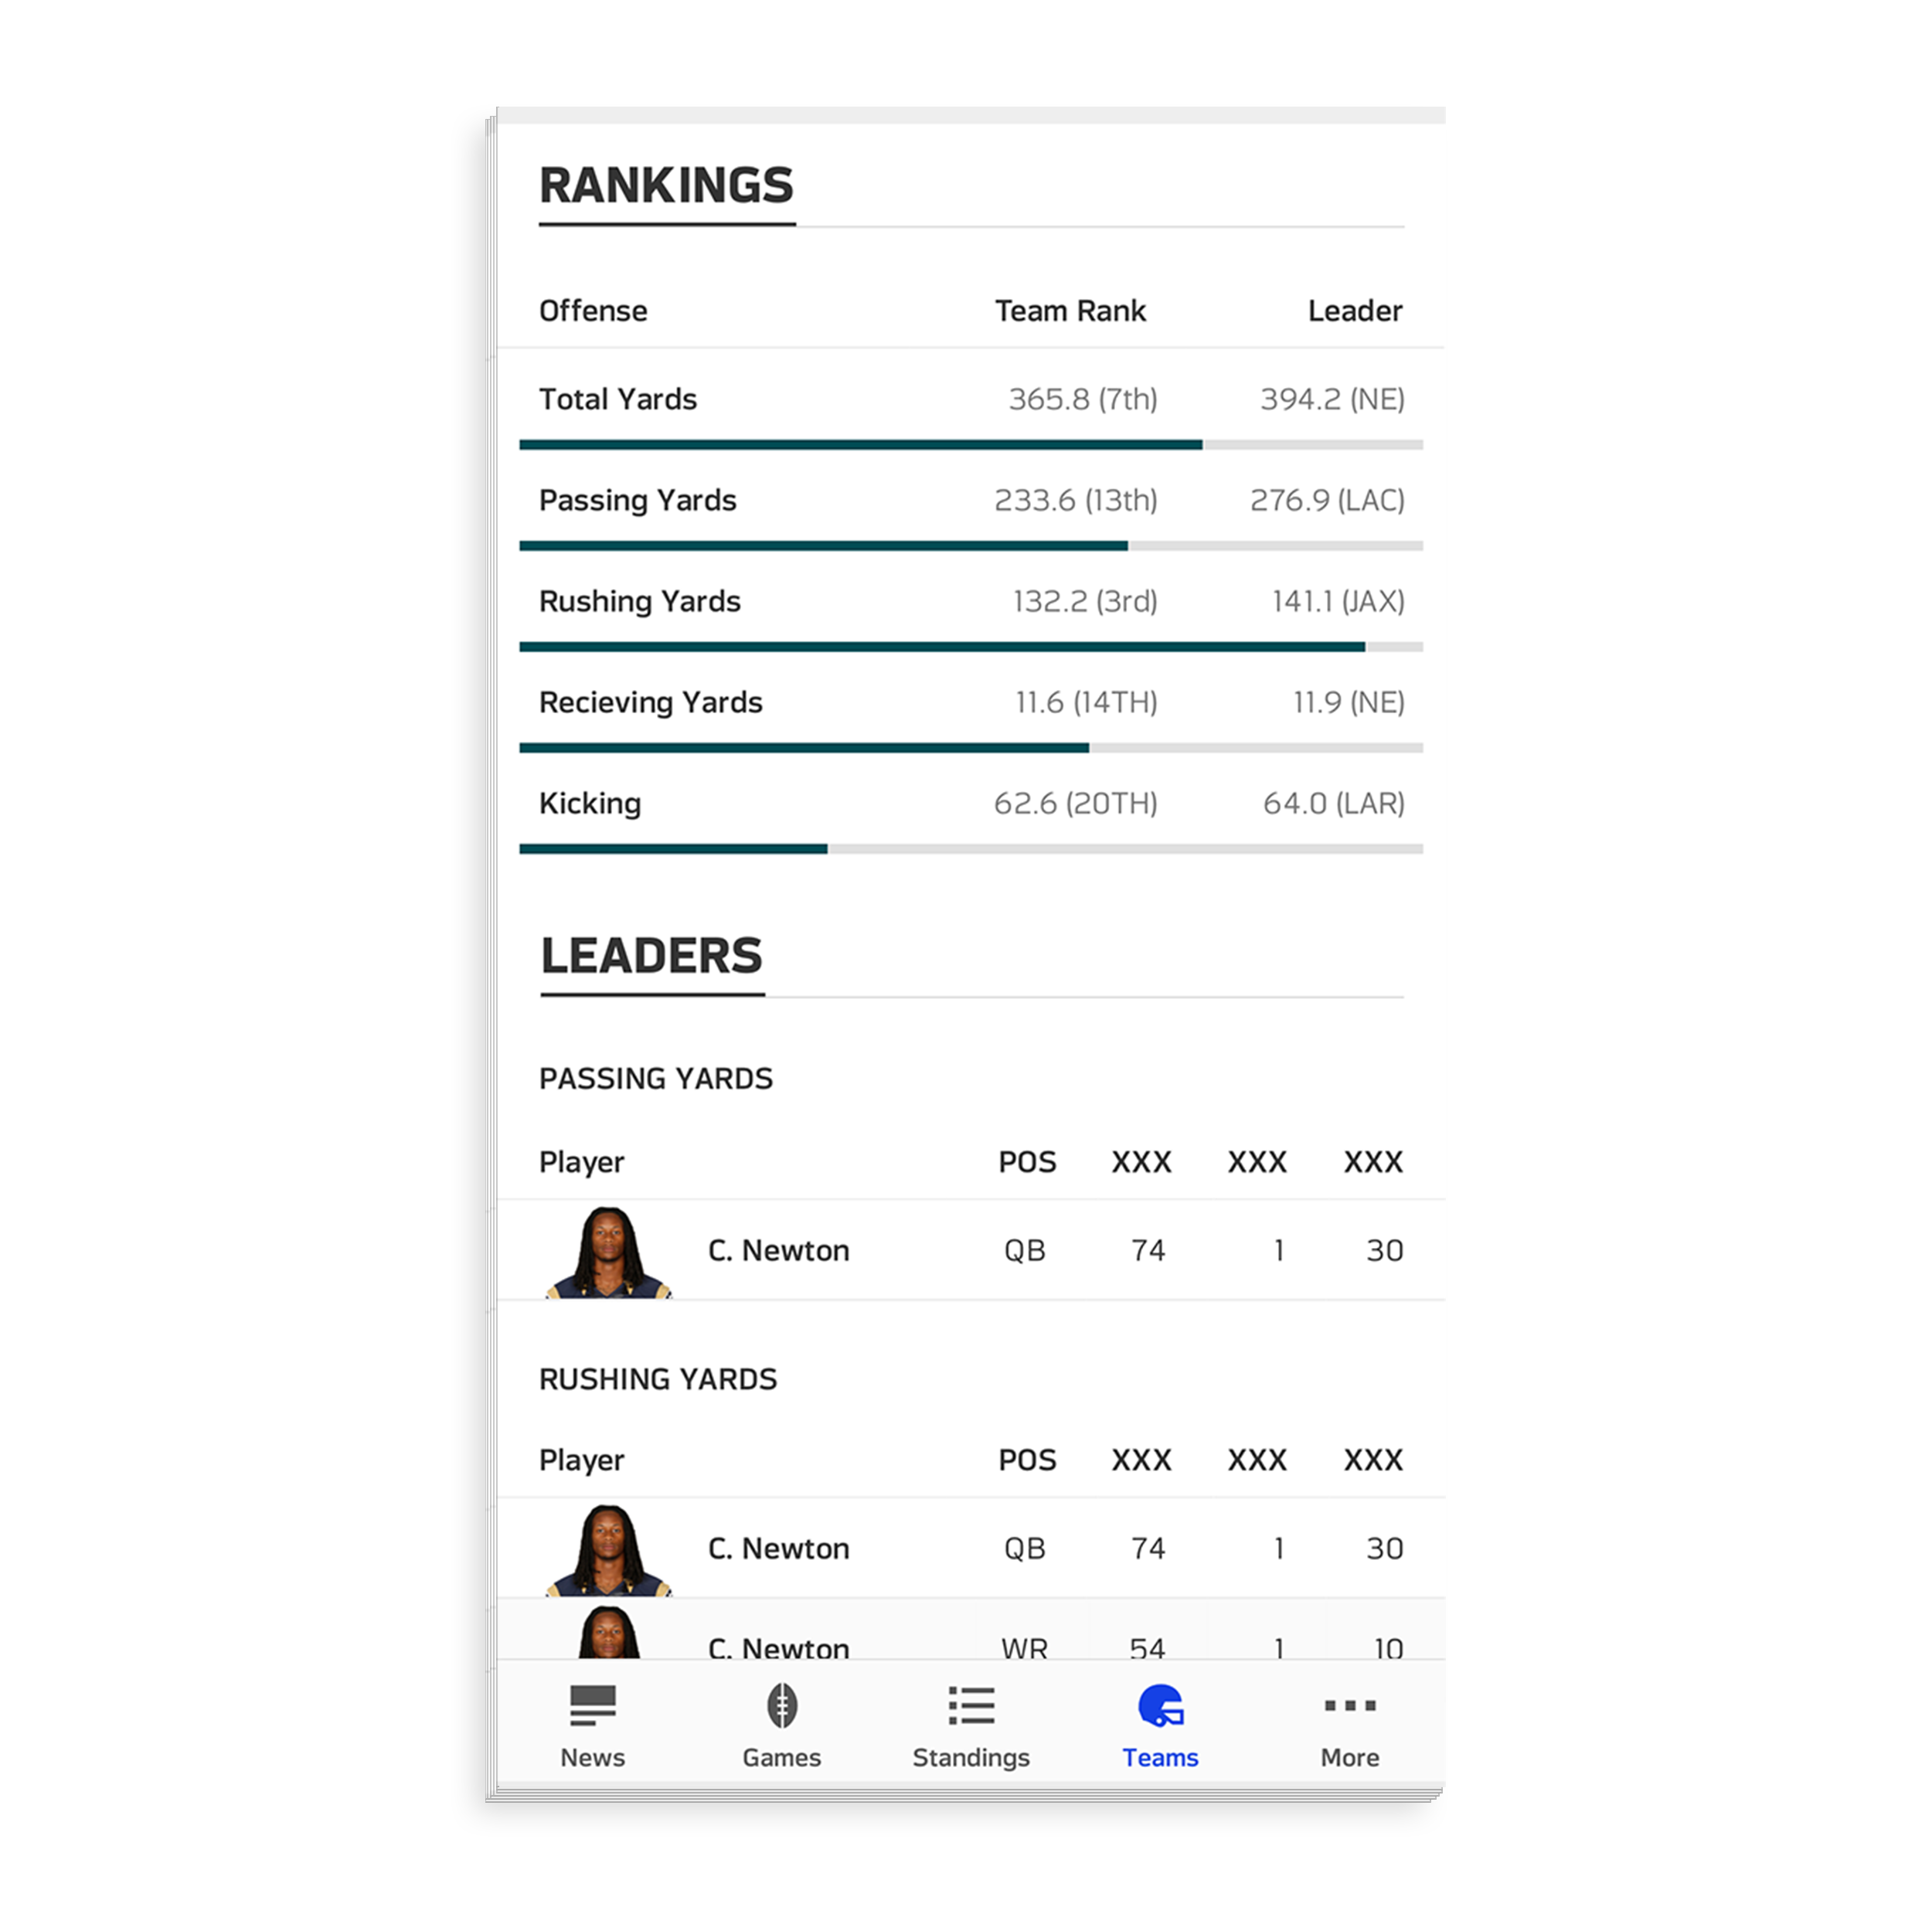 - To break up some of the tabular data, we included headshots and visual data like charts and graphs to give the page more separation between the text.